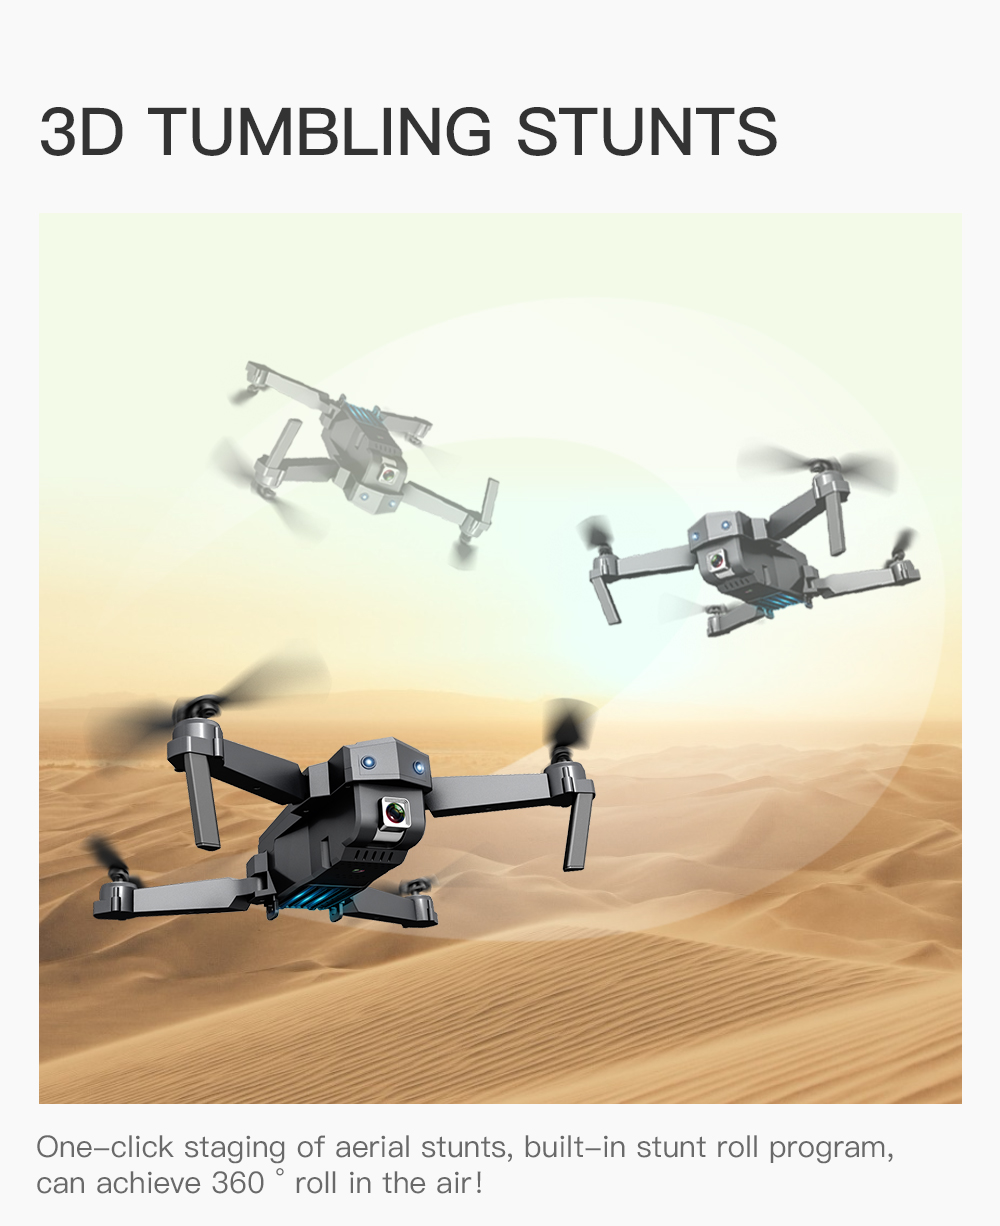 H2d75cf5ecf24453bae97d864715c87f2z - Mini SG107 Drone 4k Double Camera HD XT6 WIFI FPV Drone Air Pressure Fixed Height four-axis Aircraft RC Helicopter With Camera